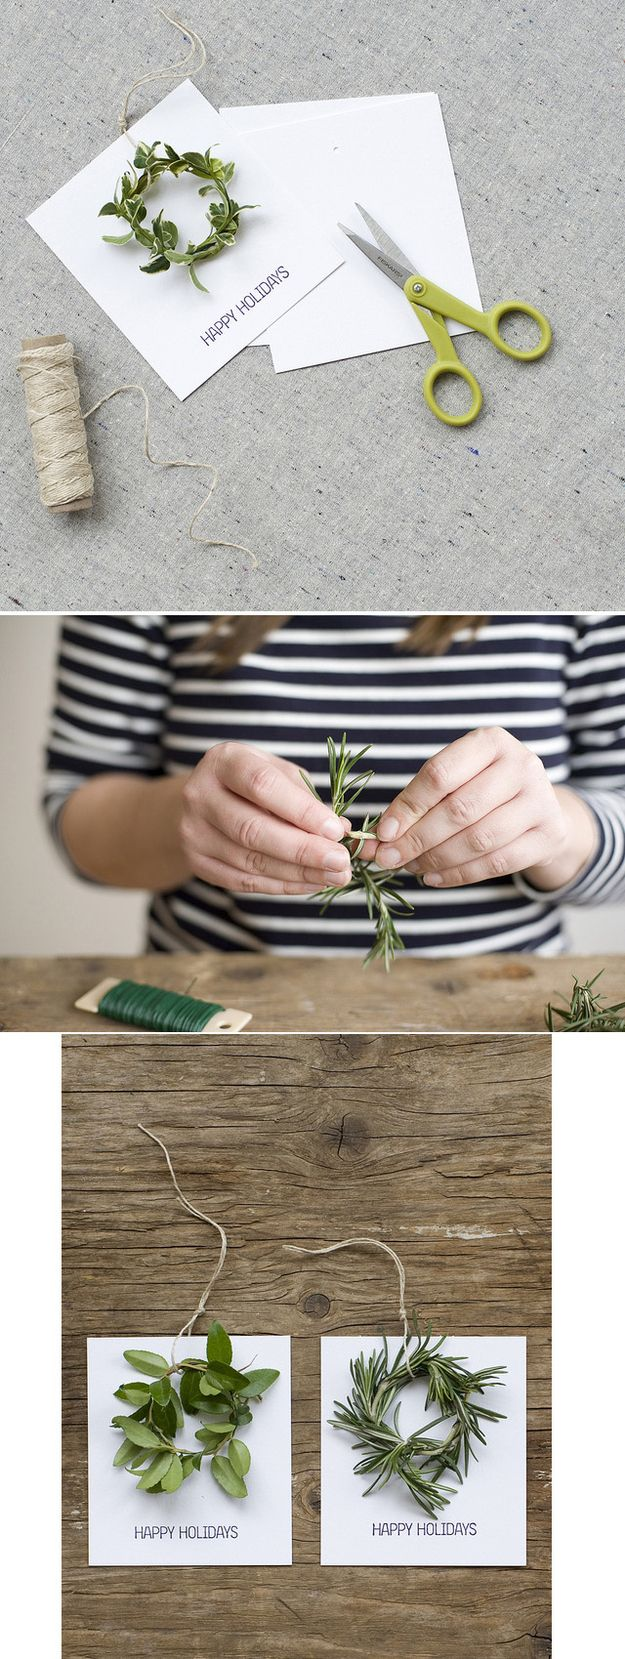 A Simple Wreath Holiday Card | 49 Awesome DIY Holiday Cards Rosemary, Lavender greenery